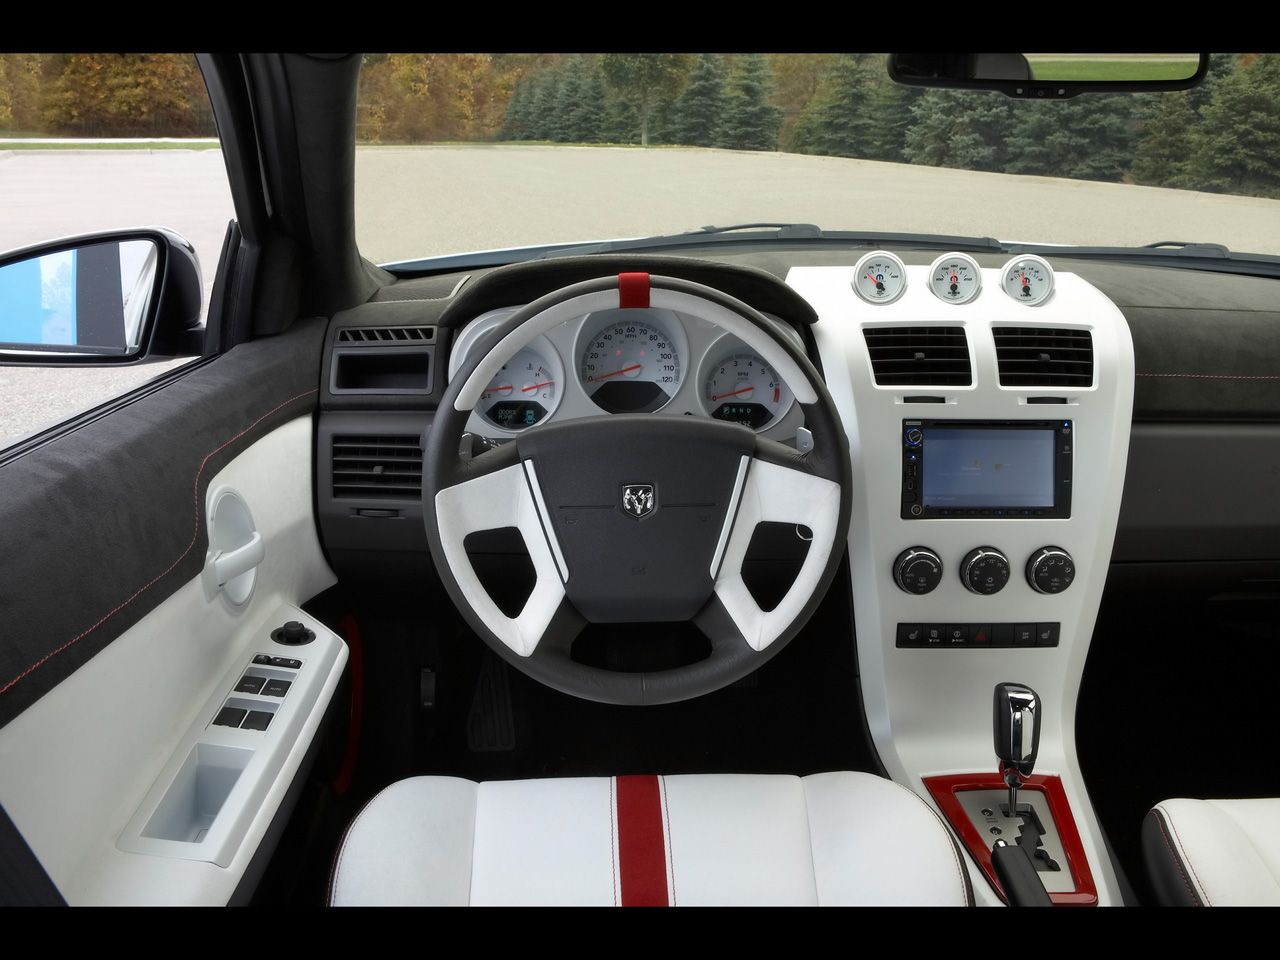 The Interior In This Dodge Avenger Omg